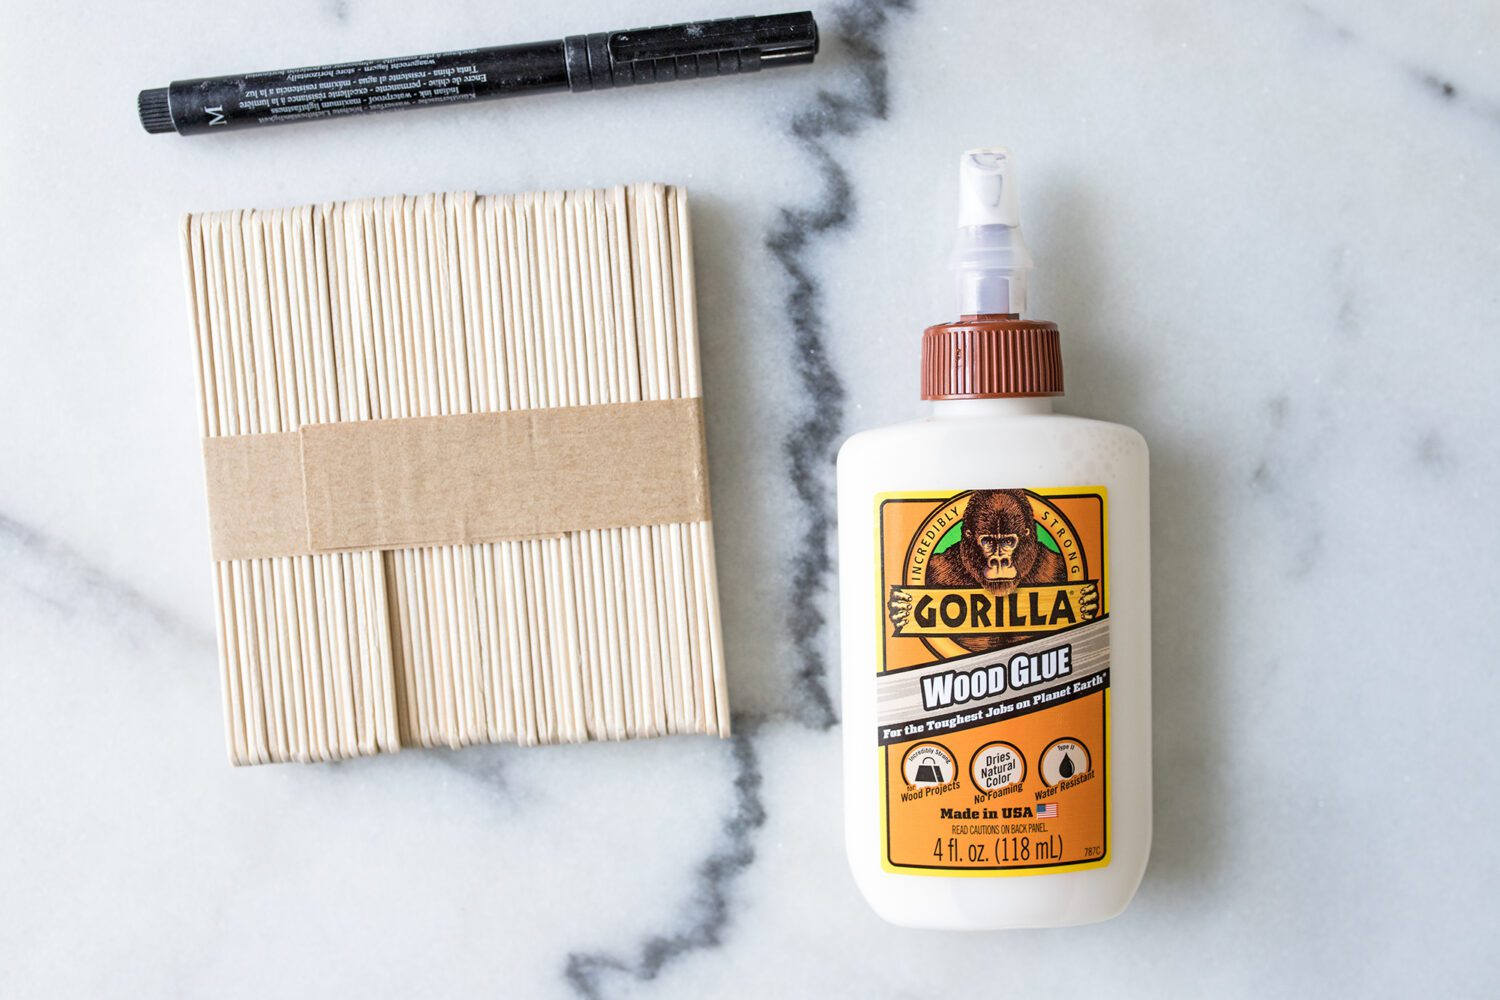 marker, popsicle sticks and wood glue